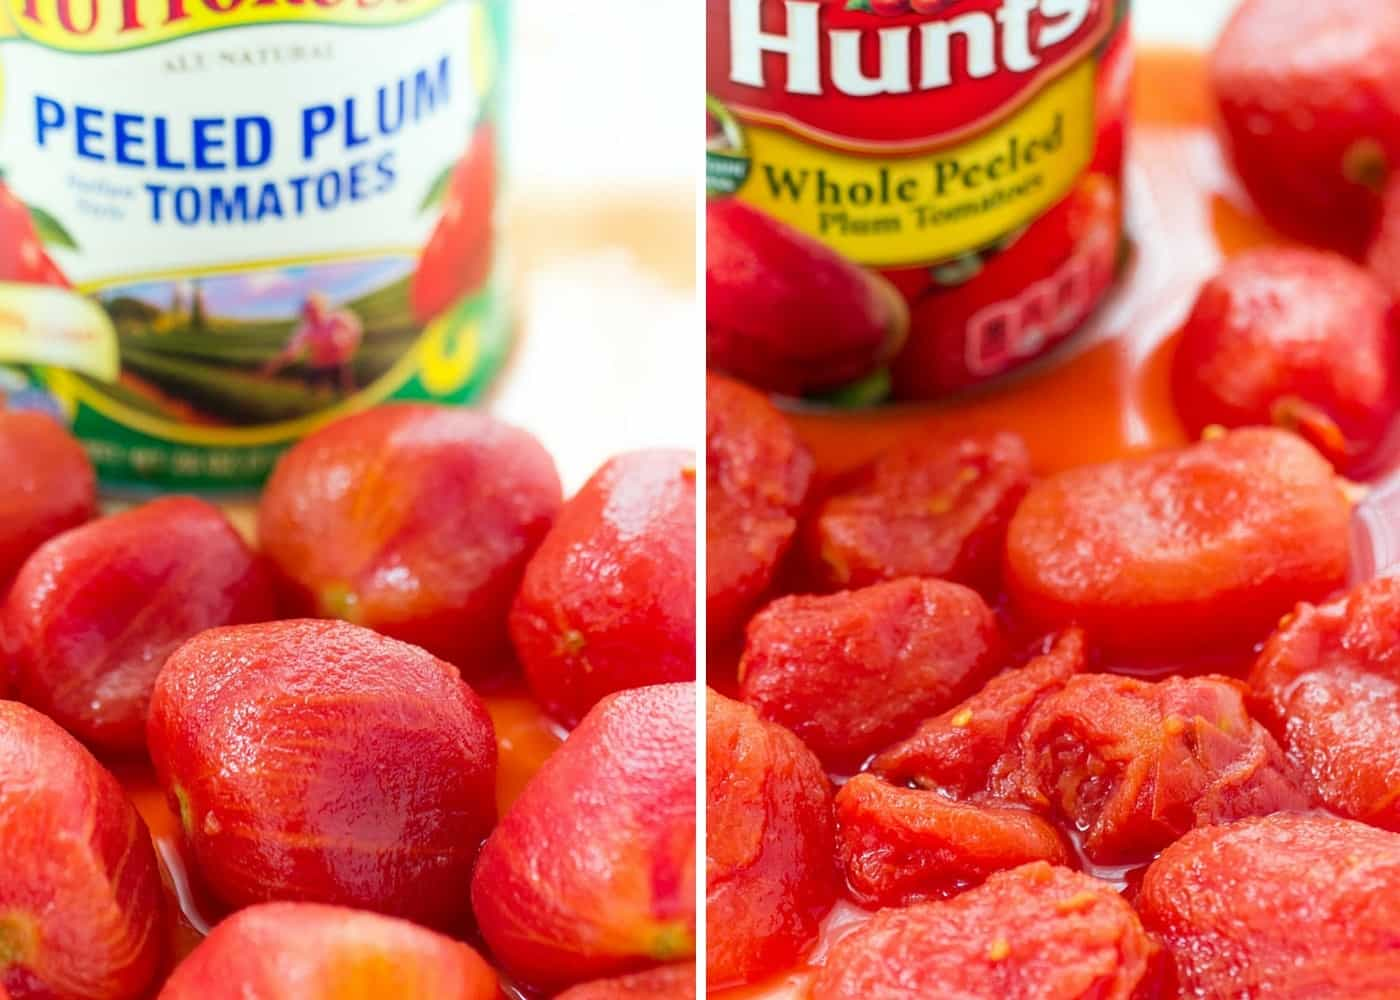 Tuttorosso Tomato Challenge: the quality difference between these two cans were astonishing!